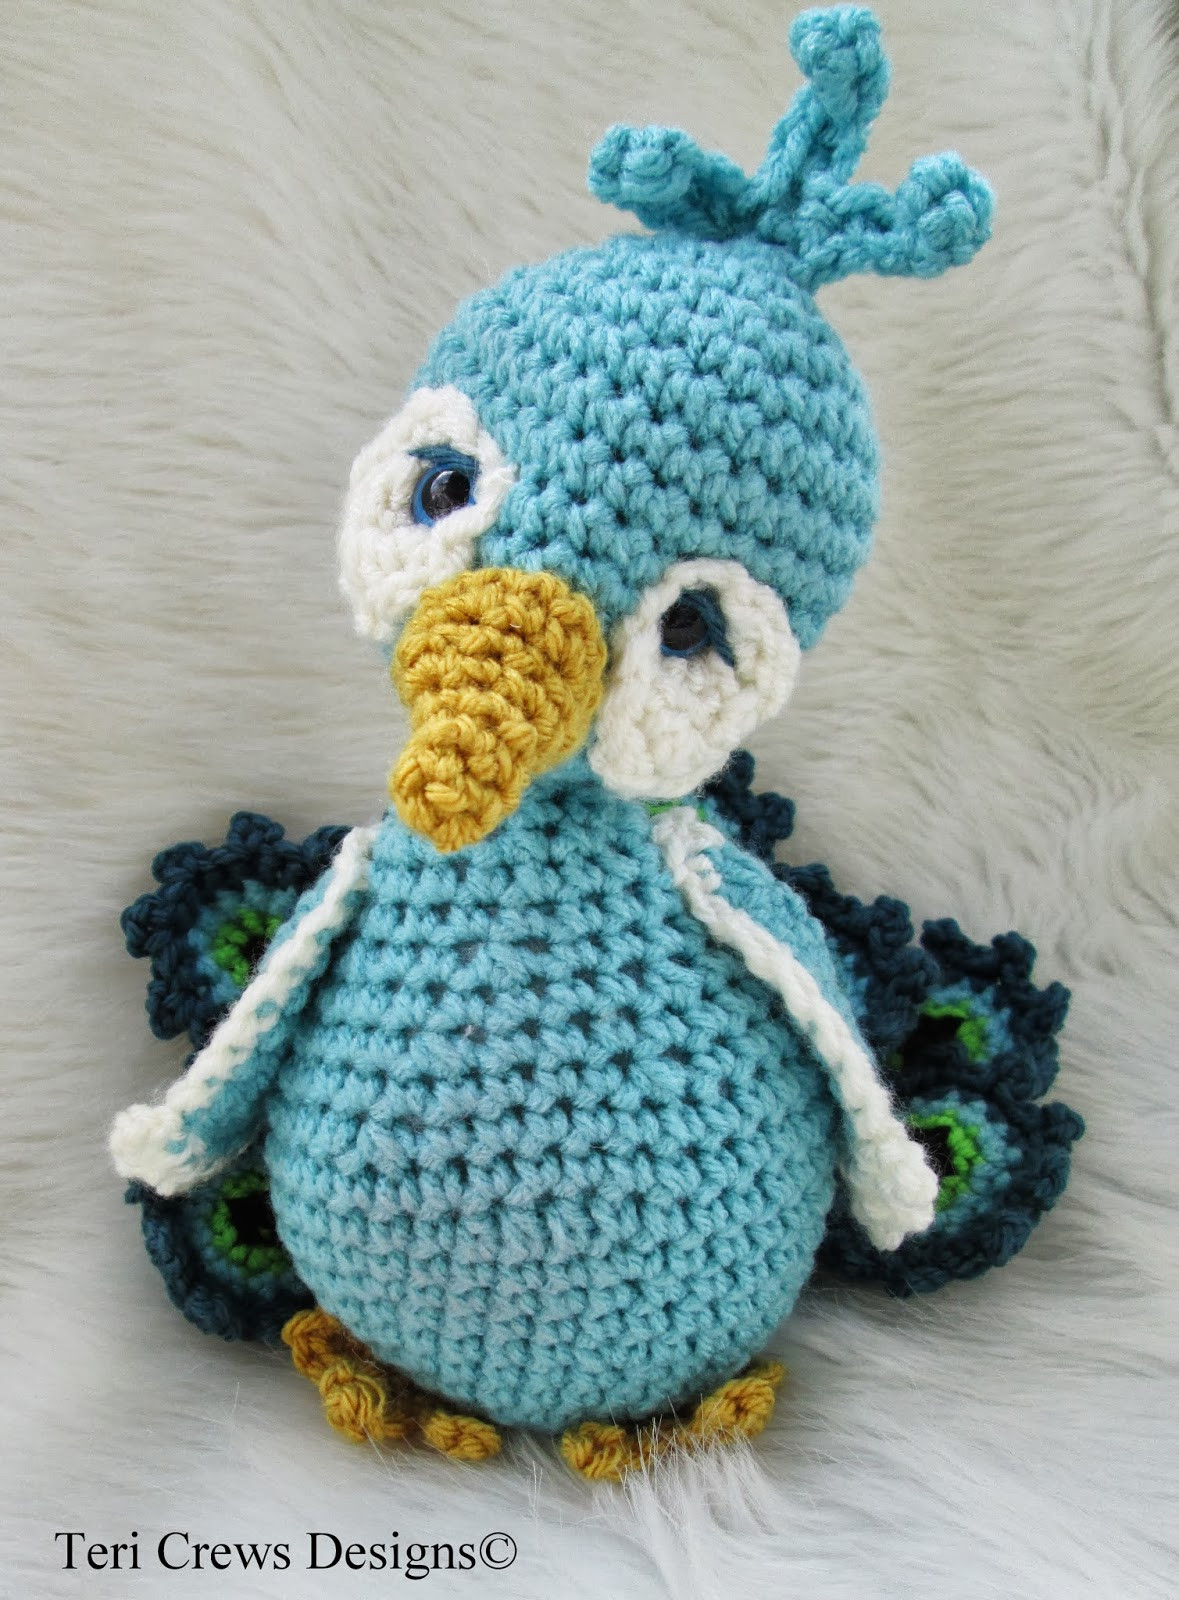 Modern Crochet Patterns Awesome Teri S Blog New Simply Cute Peacock Crochet Pattern Of Adorable 44 Pictures Modern Crochet Patterns